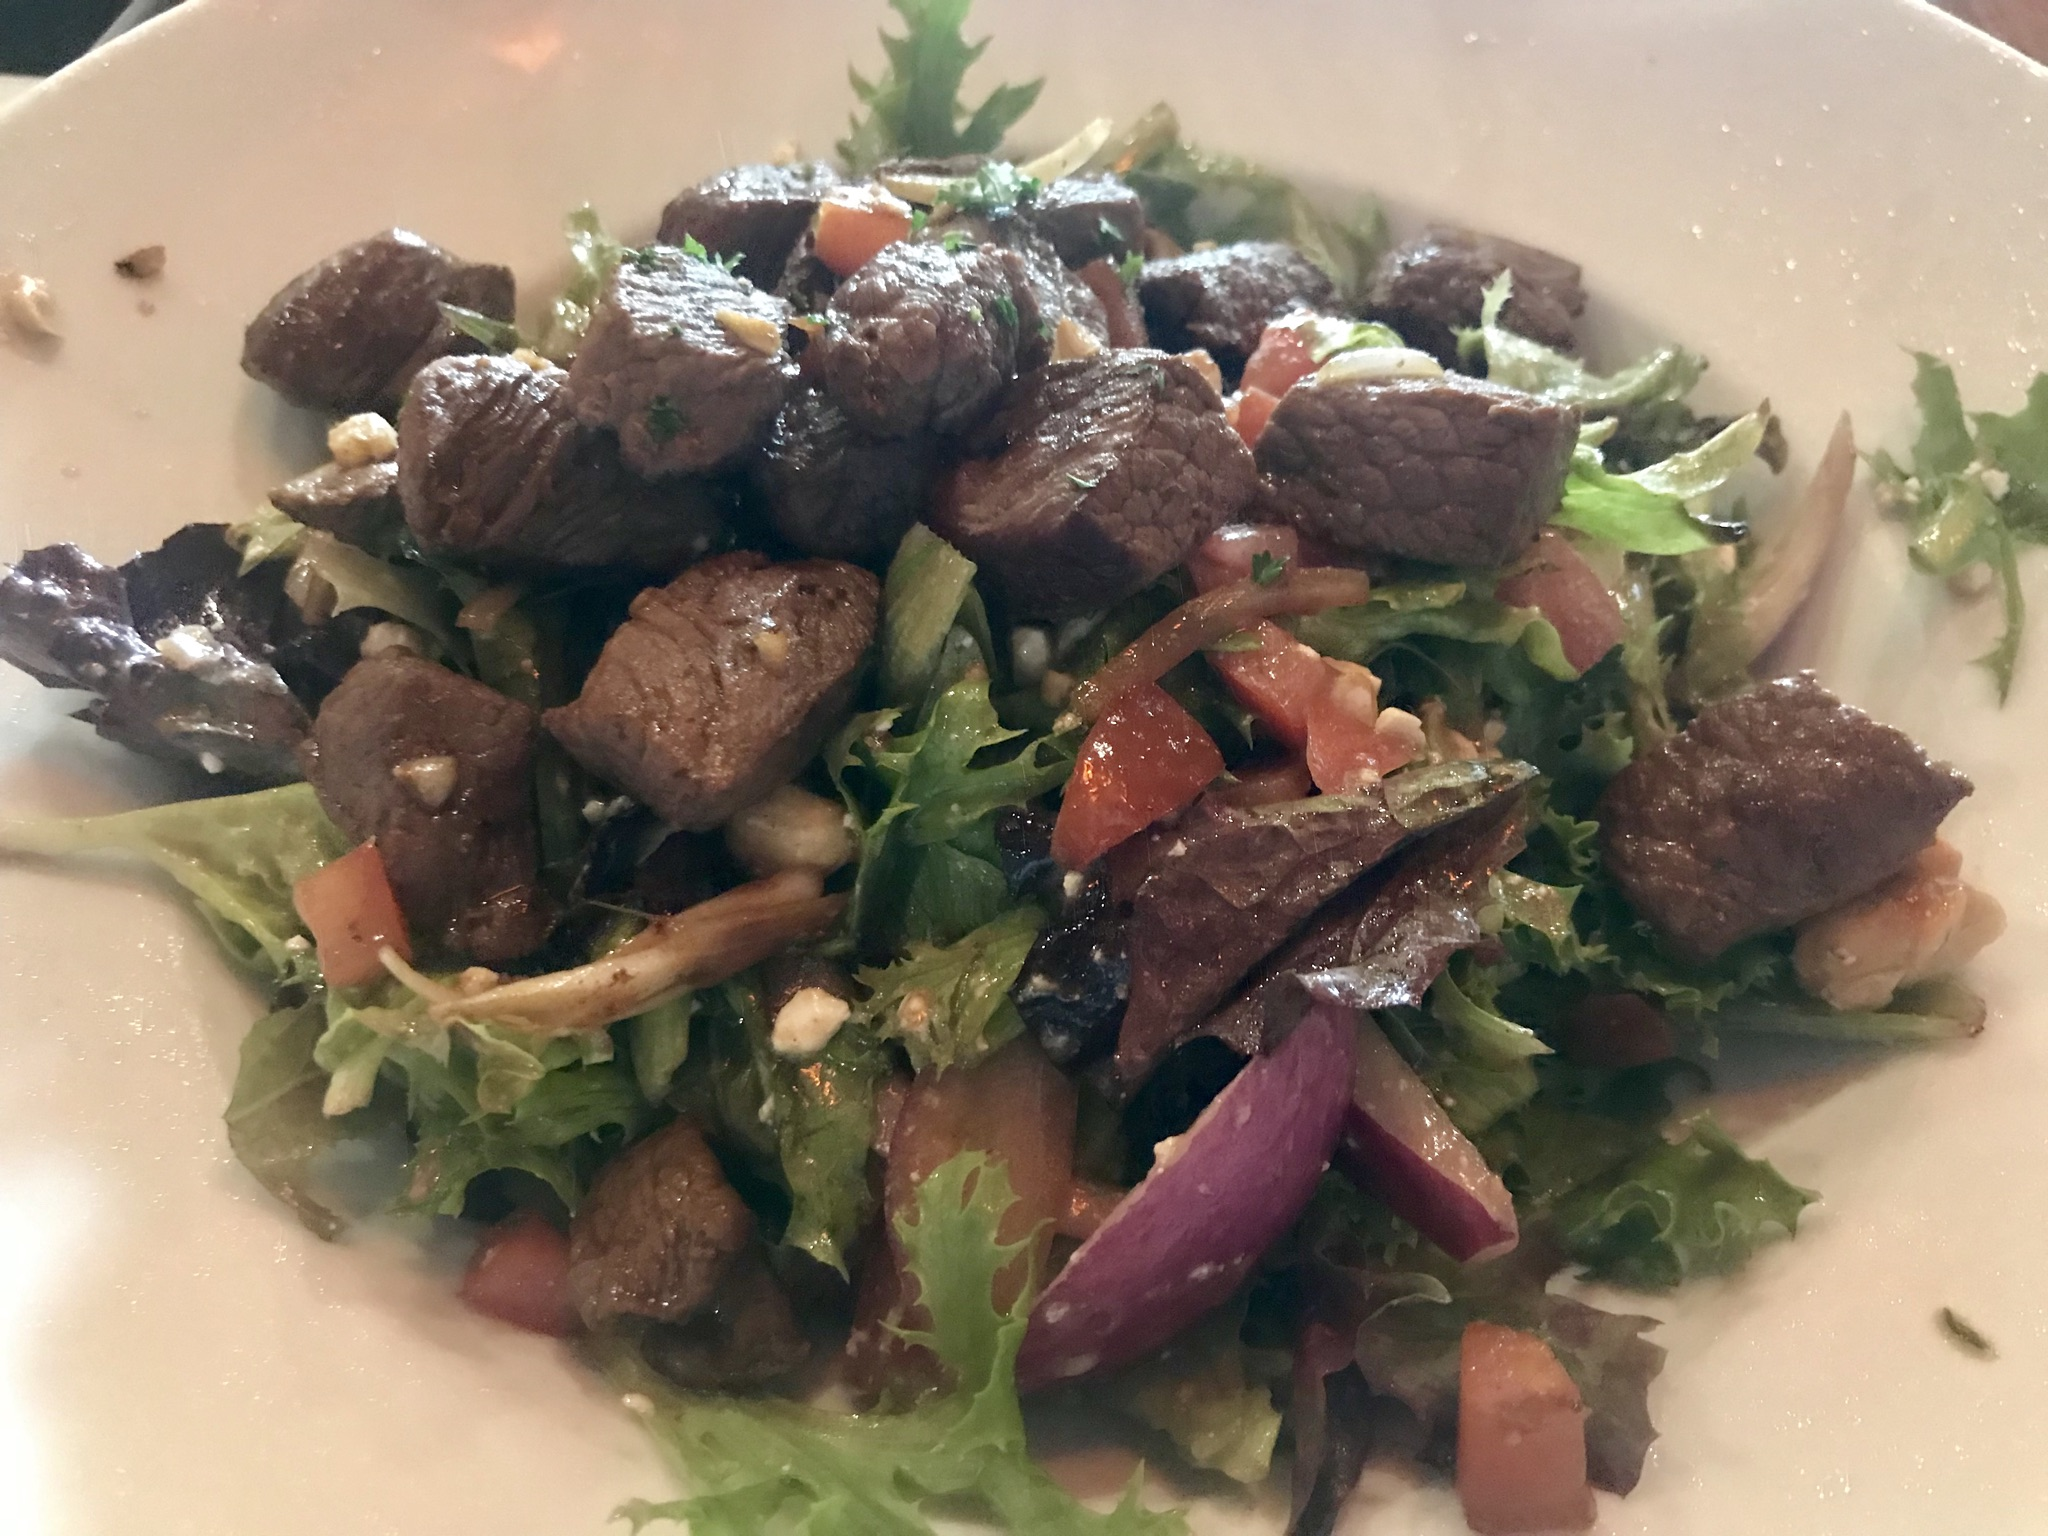 Steak Salad at Twigs Bistro in Kennewick – May 8 2019